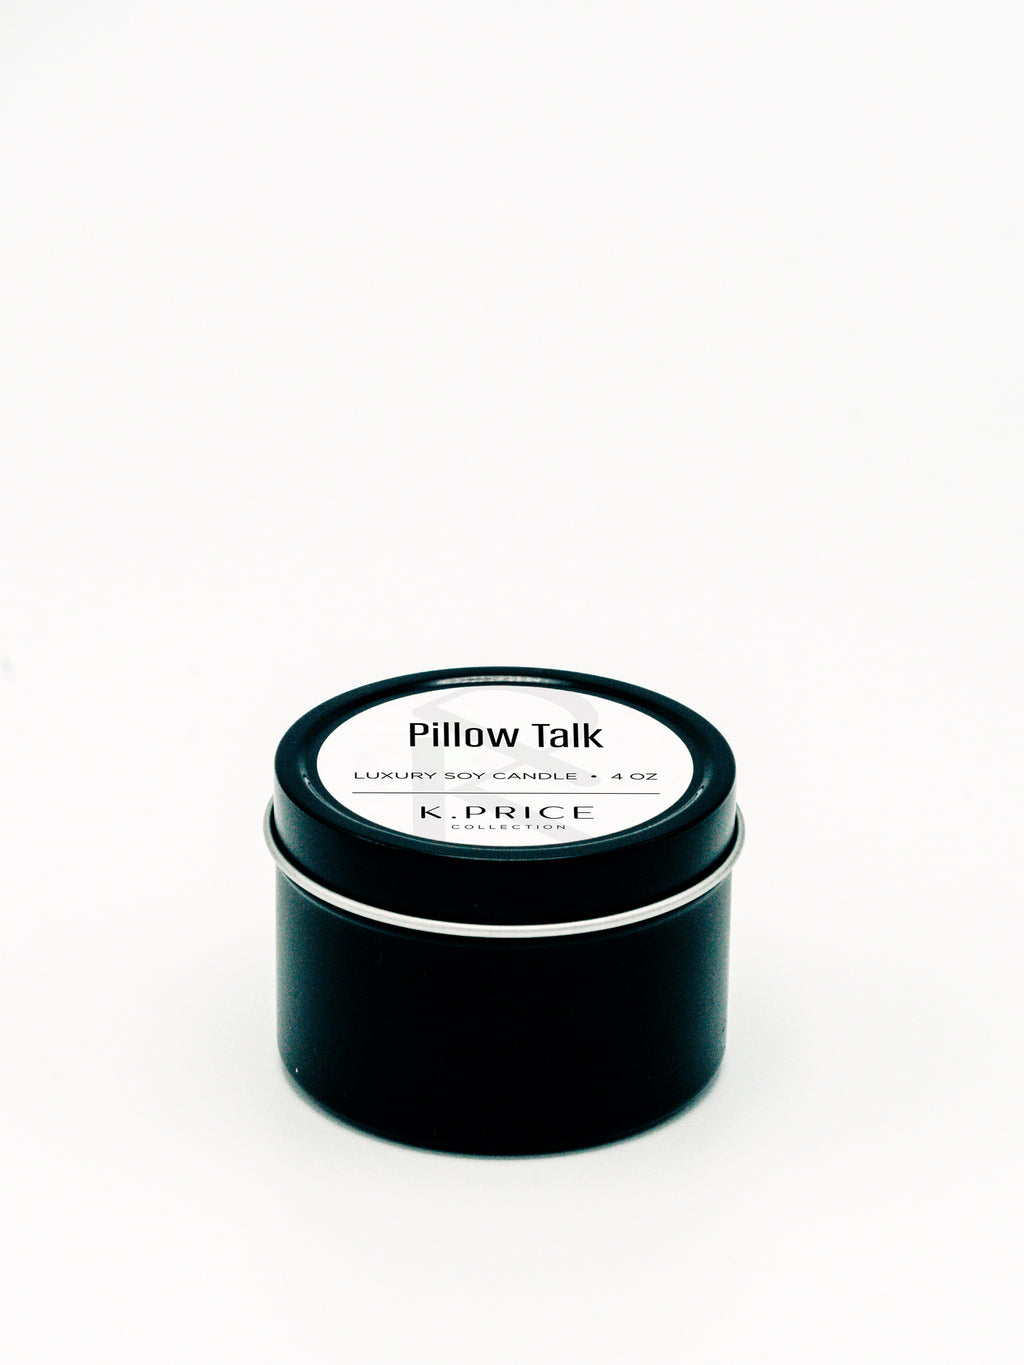 Pillow Talk - 4oz Soy Candle